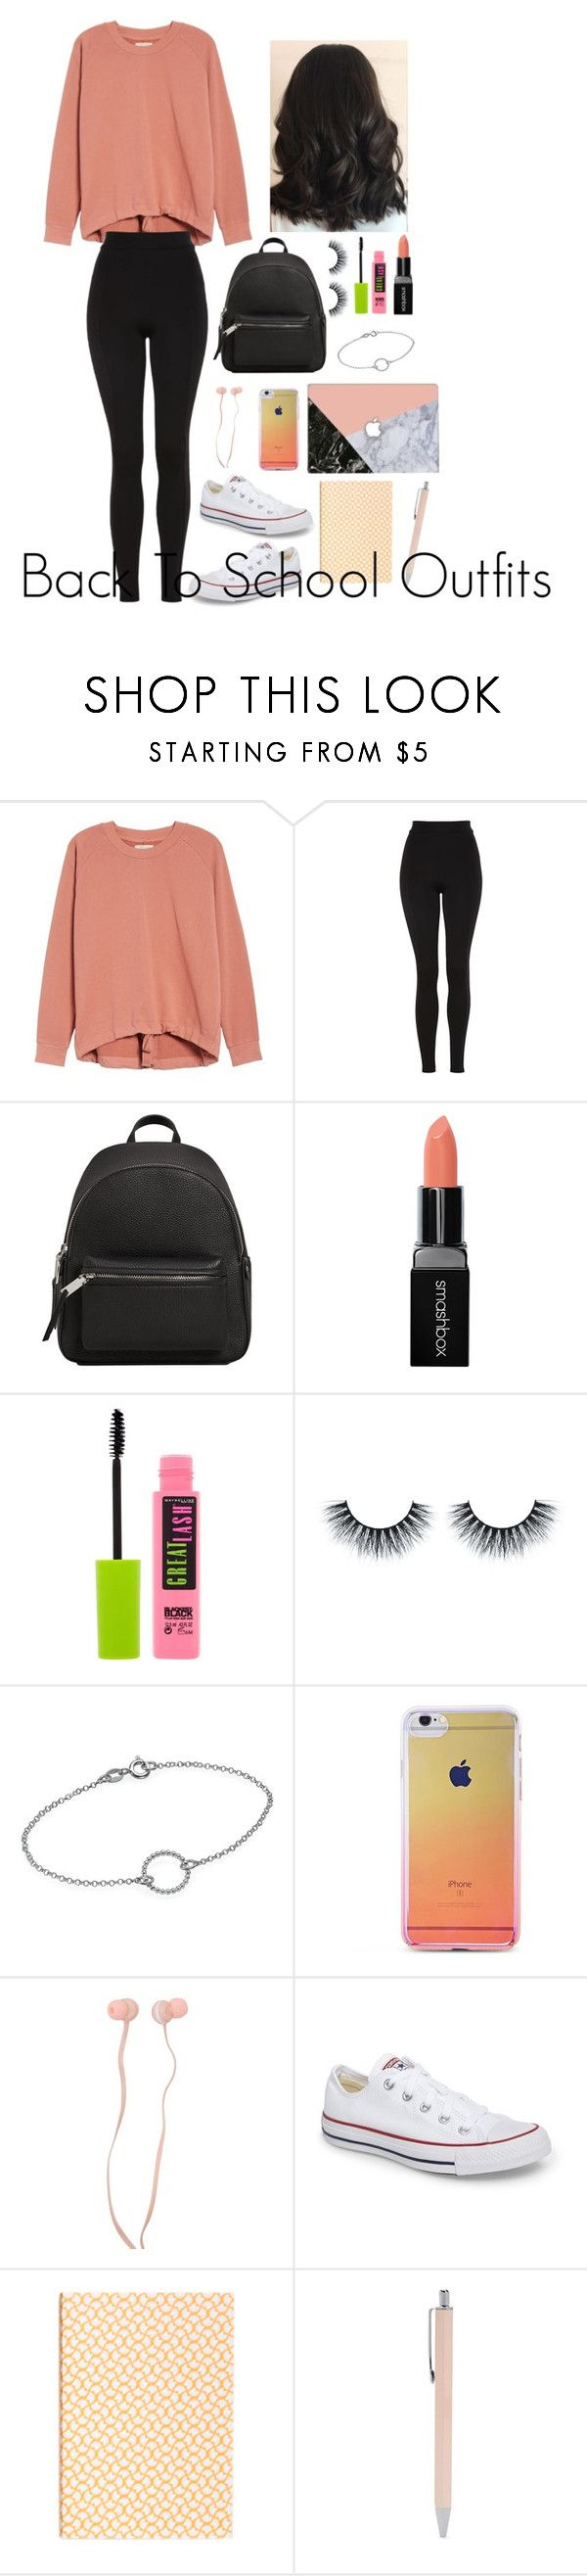 """""""Back to School Outfits #3"""" by gussied-up ❤ liked on Polyvore featuring Madewell, Topshop, MANGO, Smashbox, Maybelline, Forever 21 and Converse"""